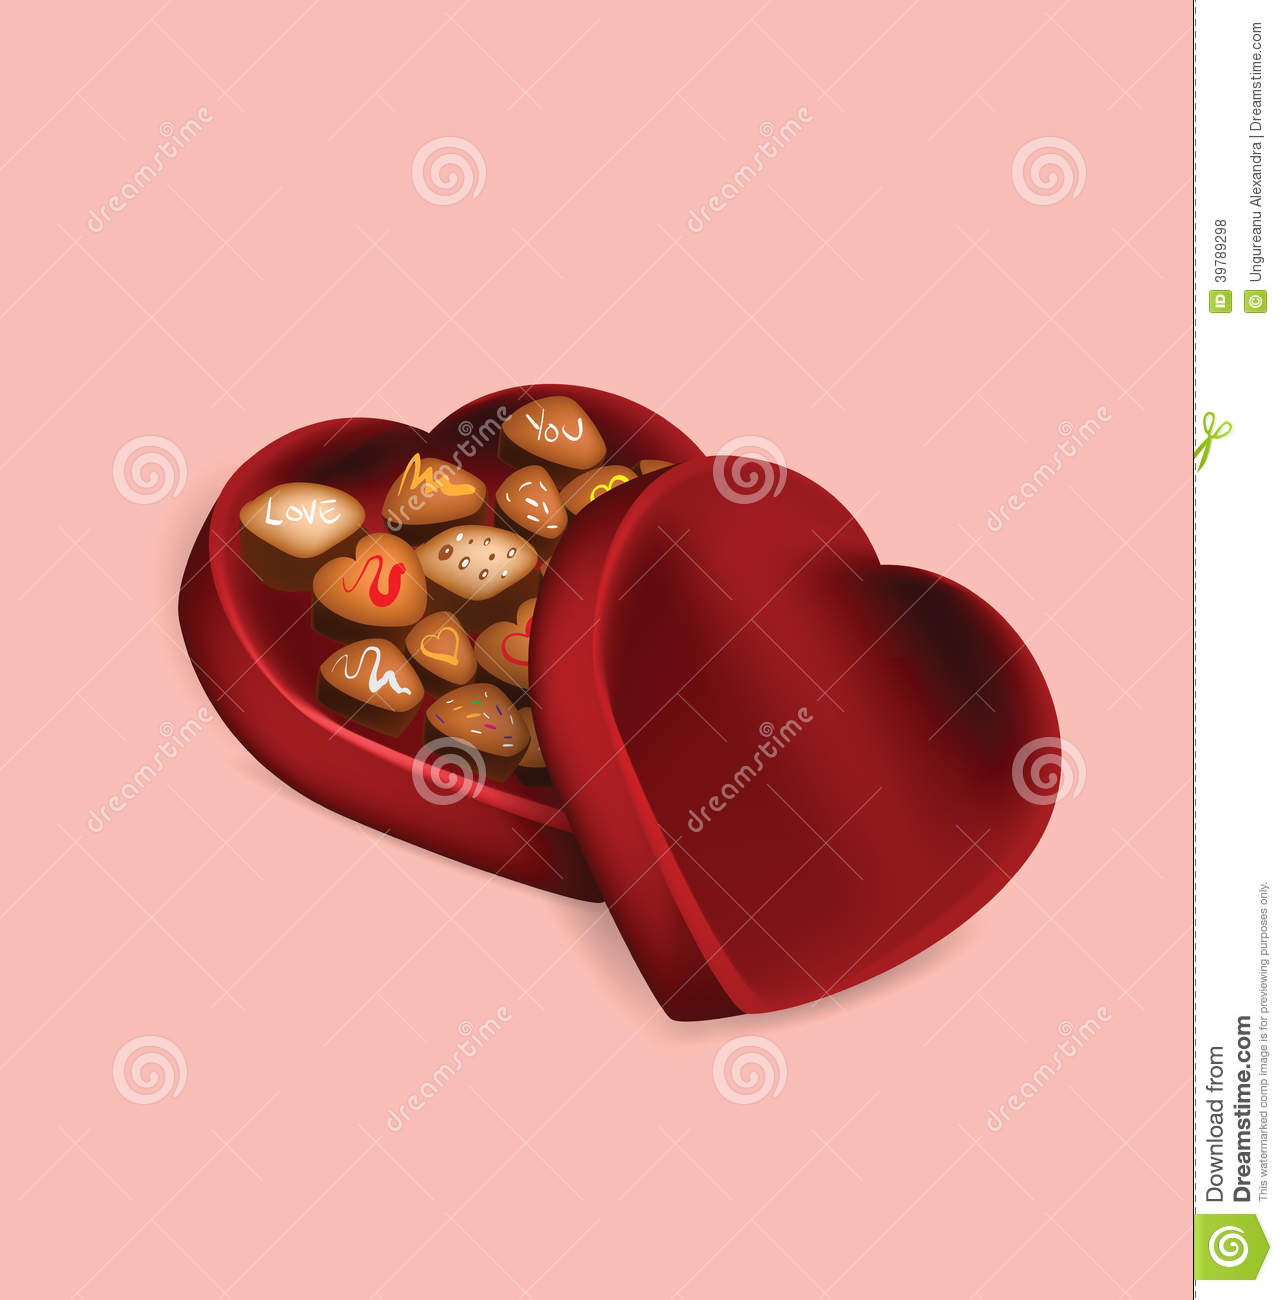 Illustration Of Valentine S Day Chocolate Box On Pink Background